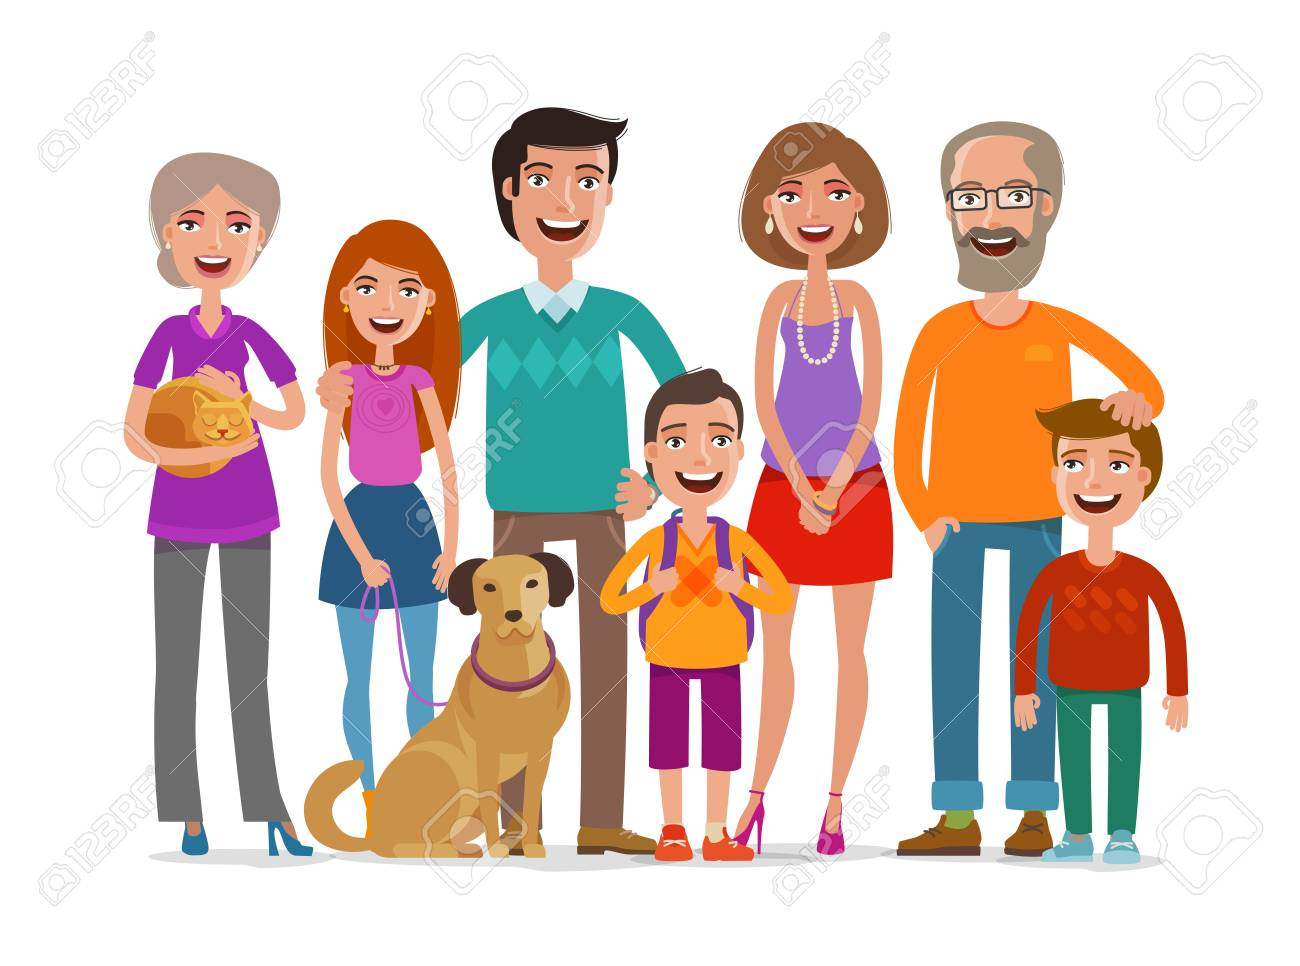 Big Happy Family Group Of People Parents And Children Concept Royalty Free Cliparts Vectors And Stock Illustration Image 79987328